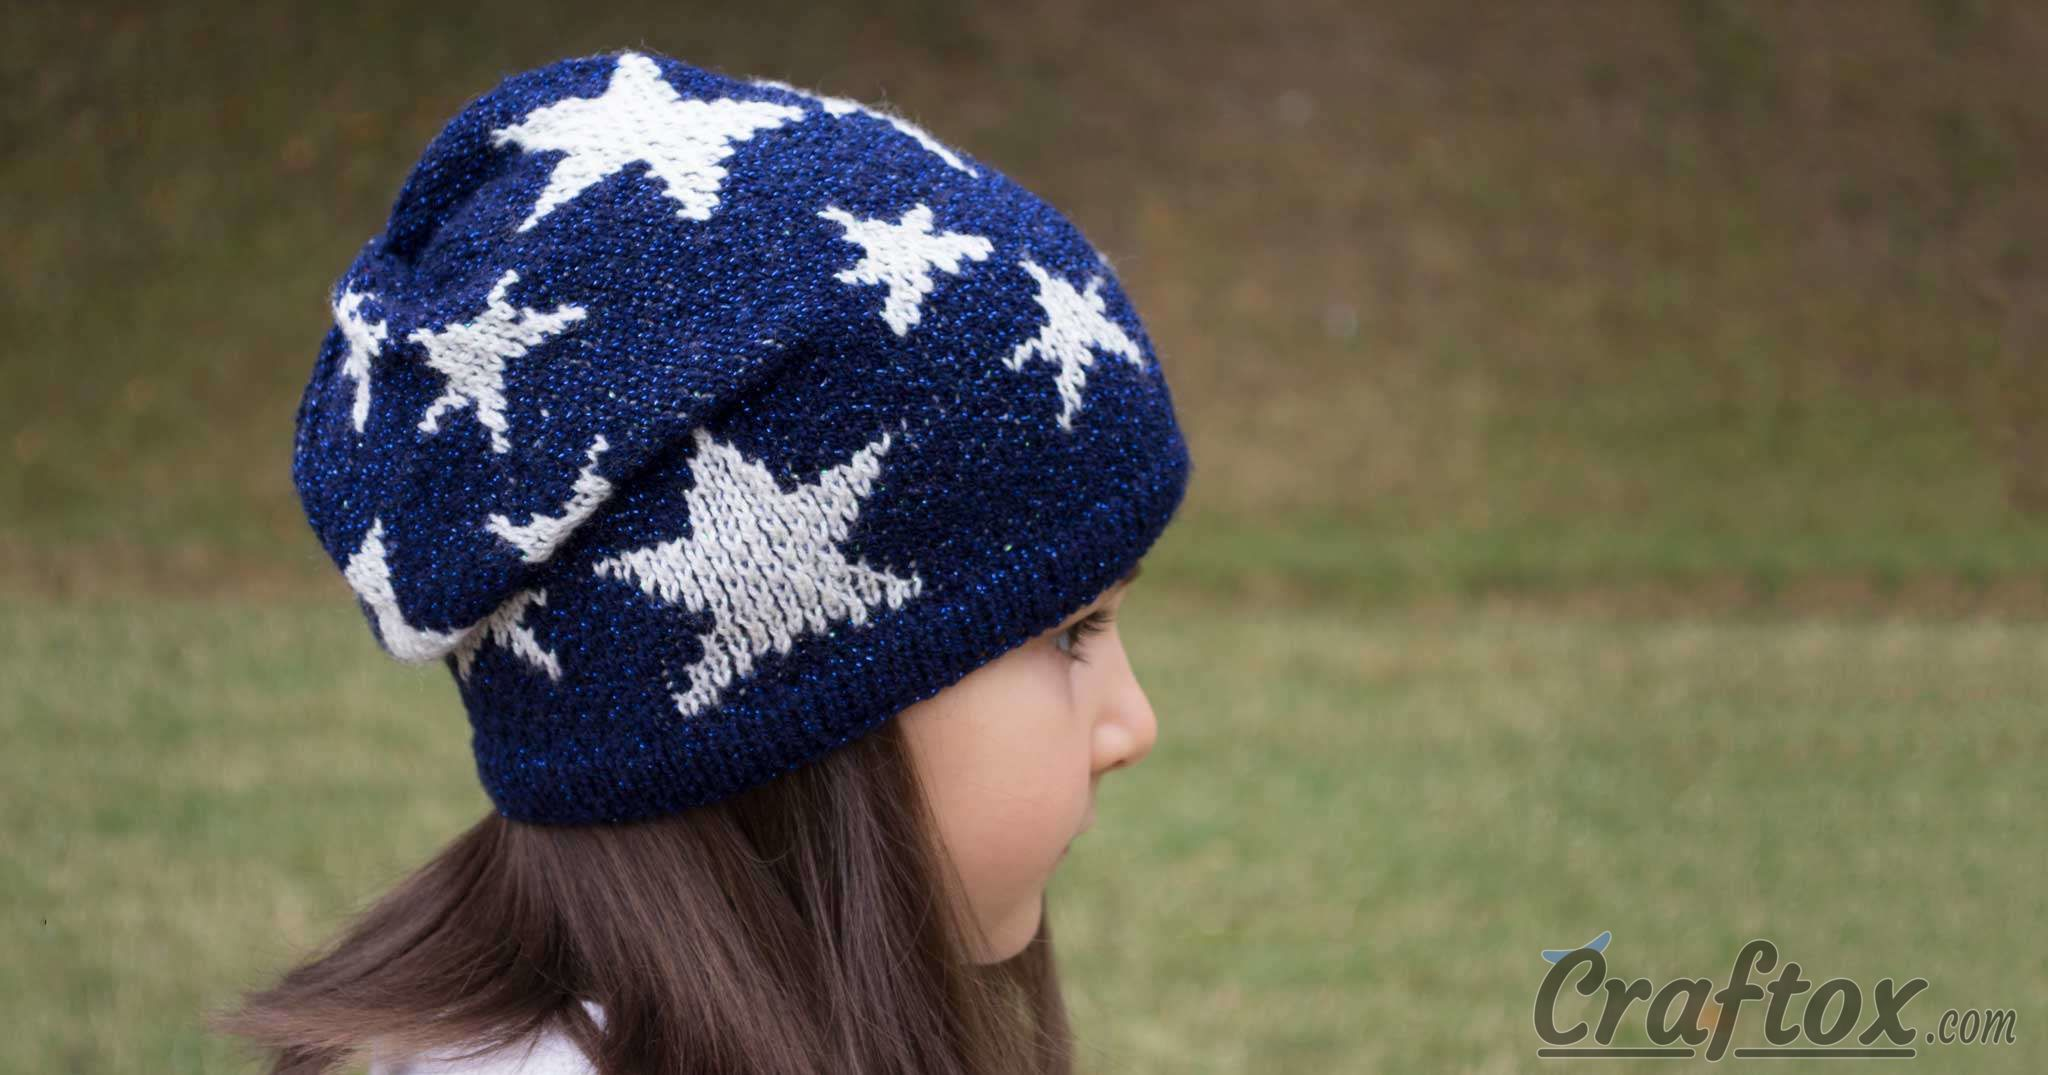 Slouchy beanie with stars. Free jacquard knitting pattern